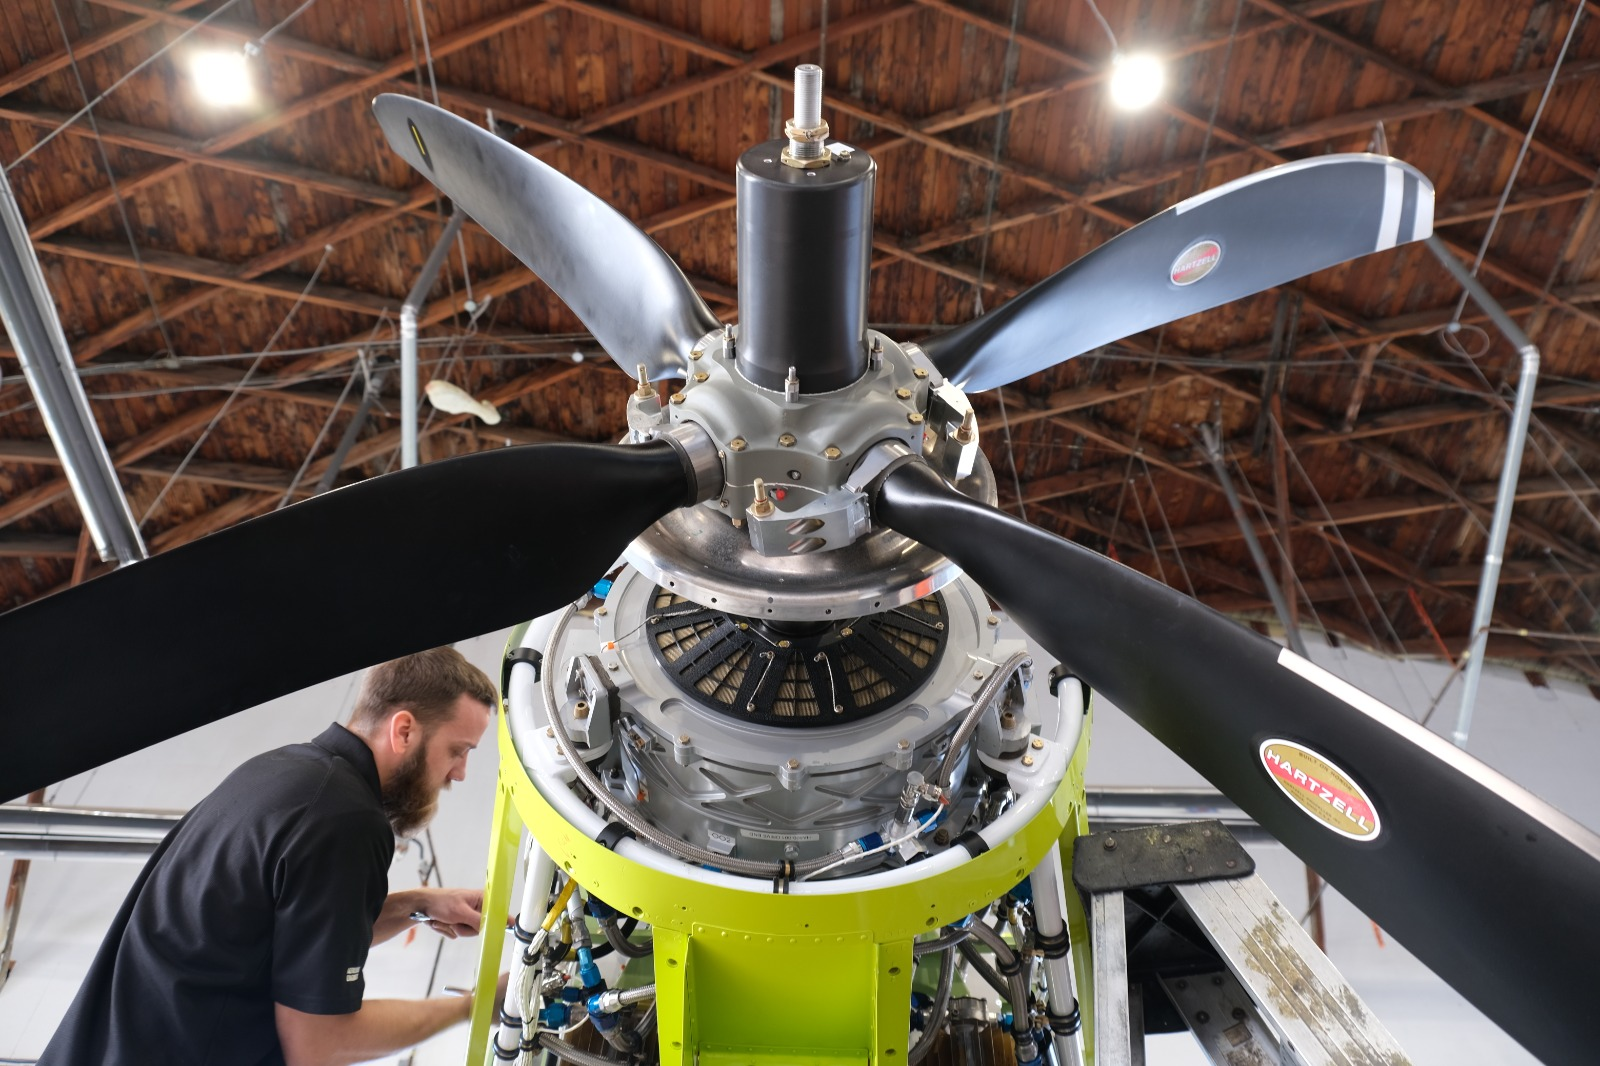 MagniX engineers prepare Harbour Air's MagniX-powered de Havilland Canada DHC-2 Beaver for its first flight in December 2019.